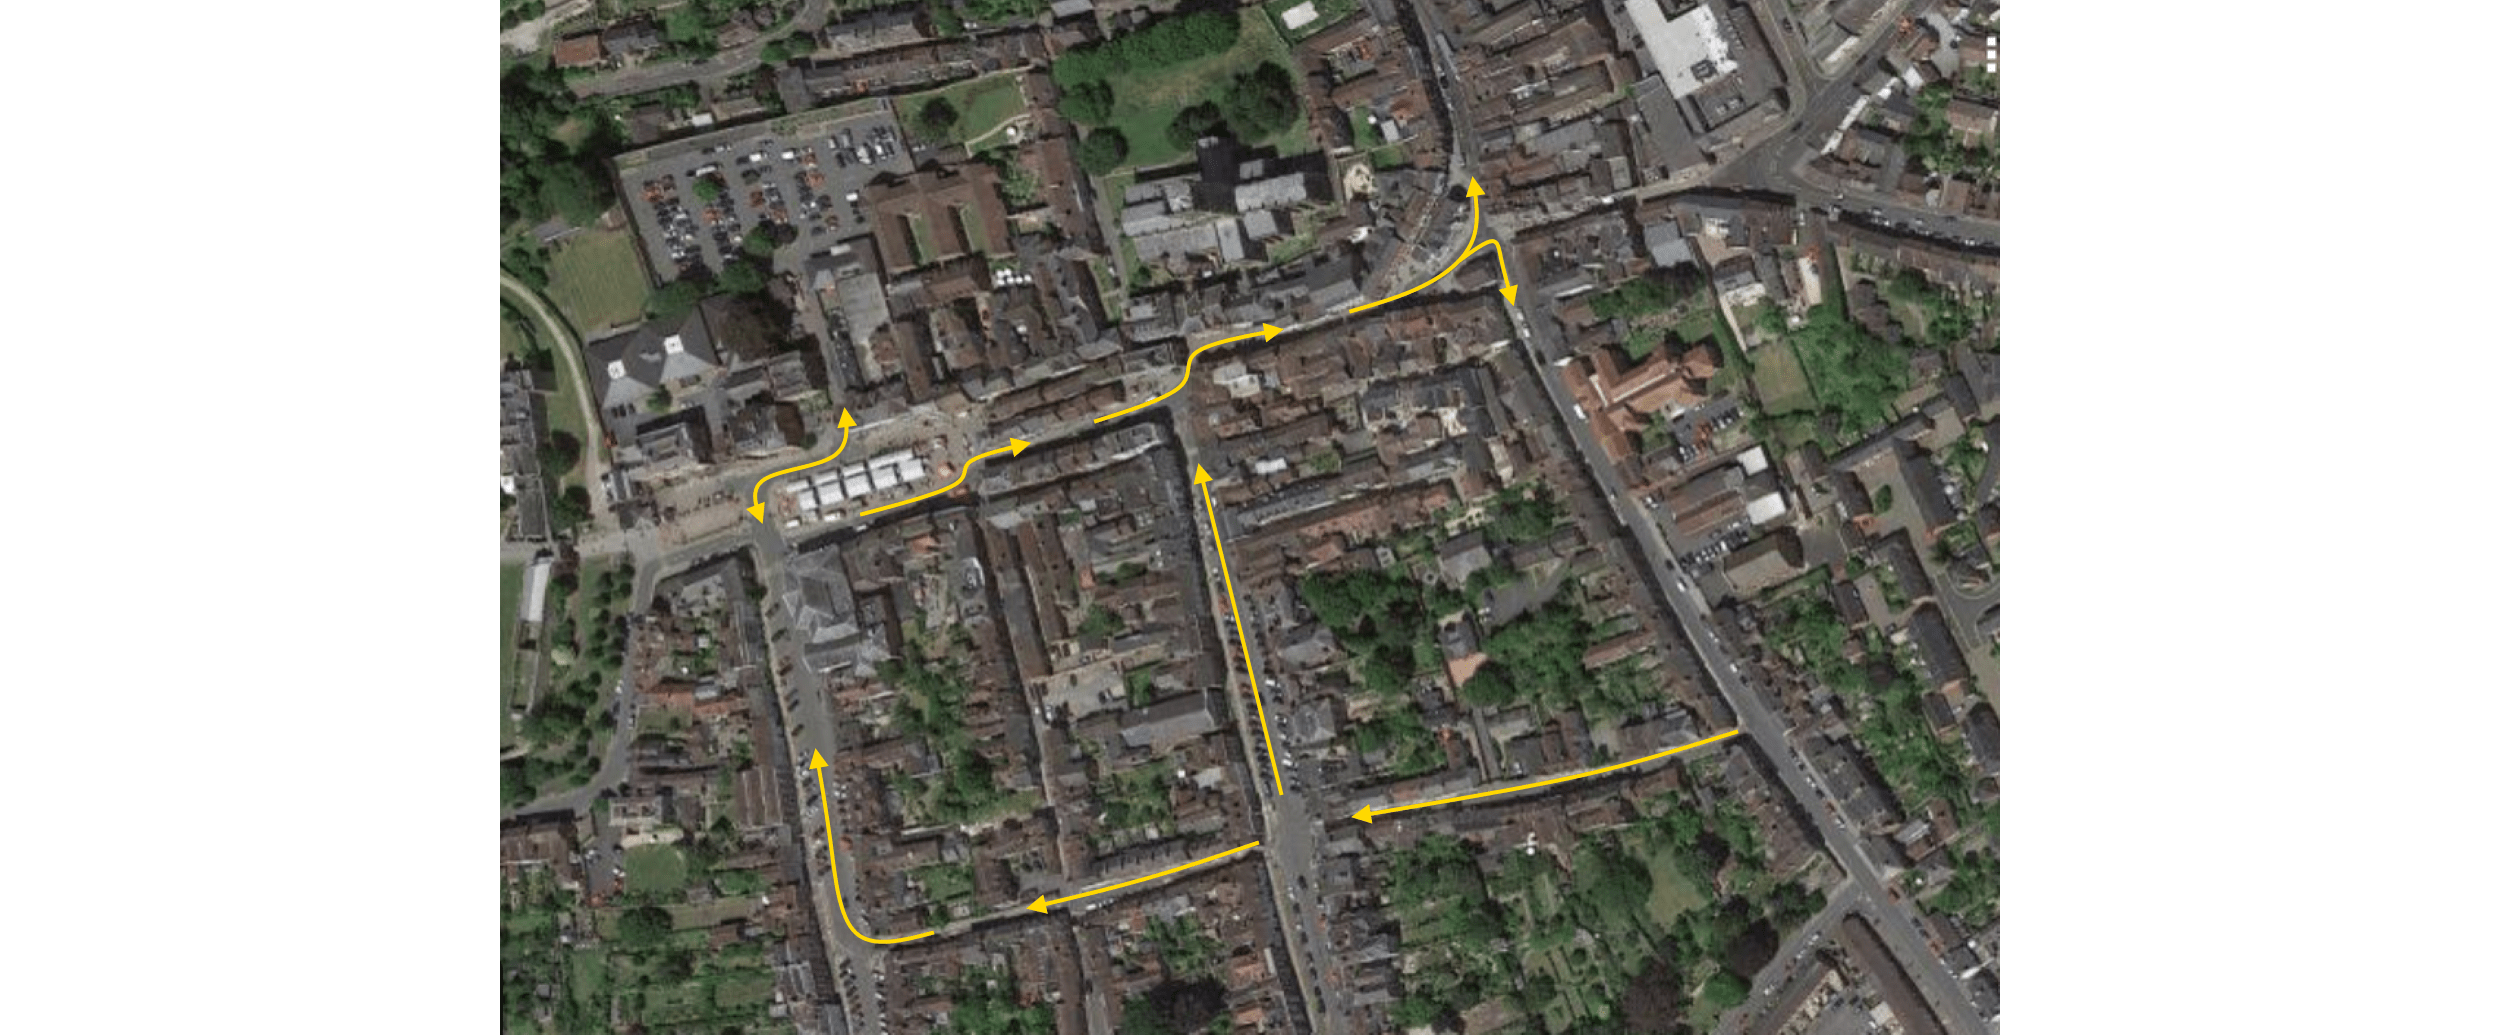 Should we reverse traffic flow in Ludlow town centre? To me it makes a lot of sense but it is a big project